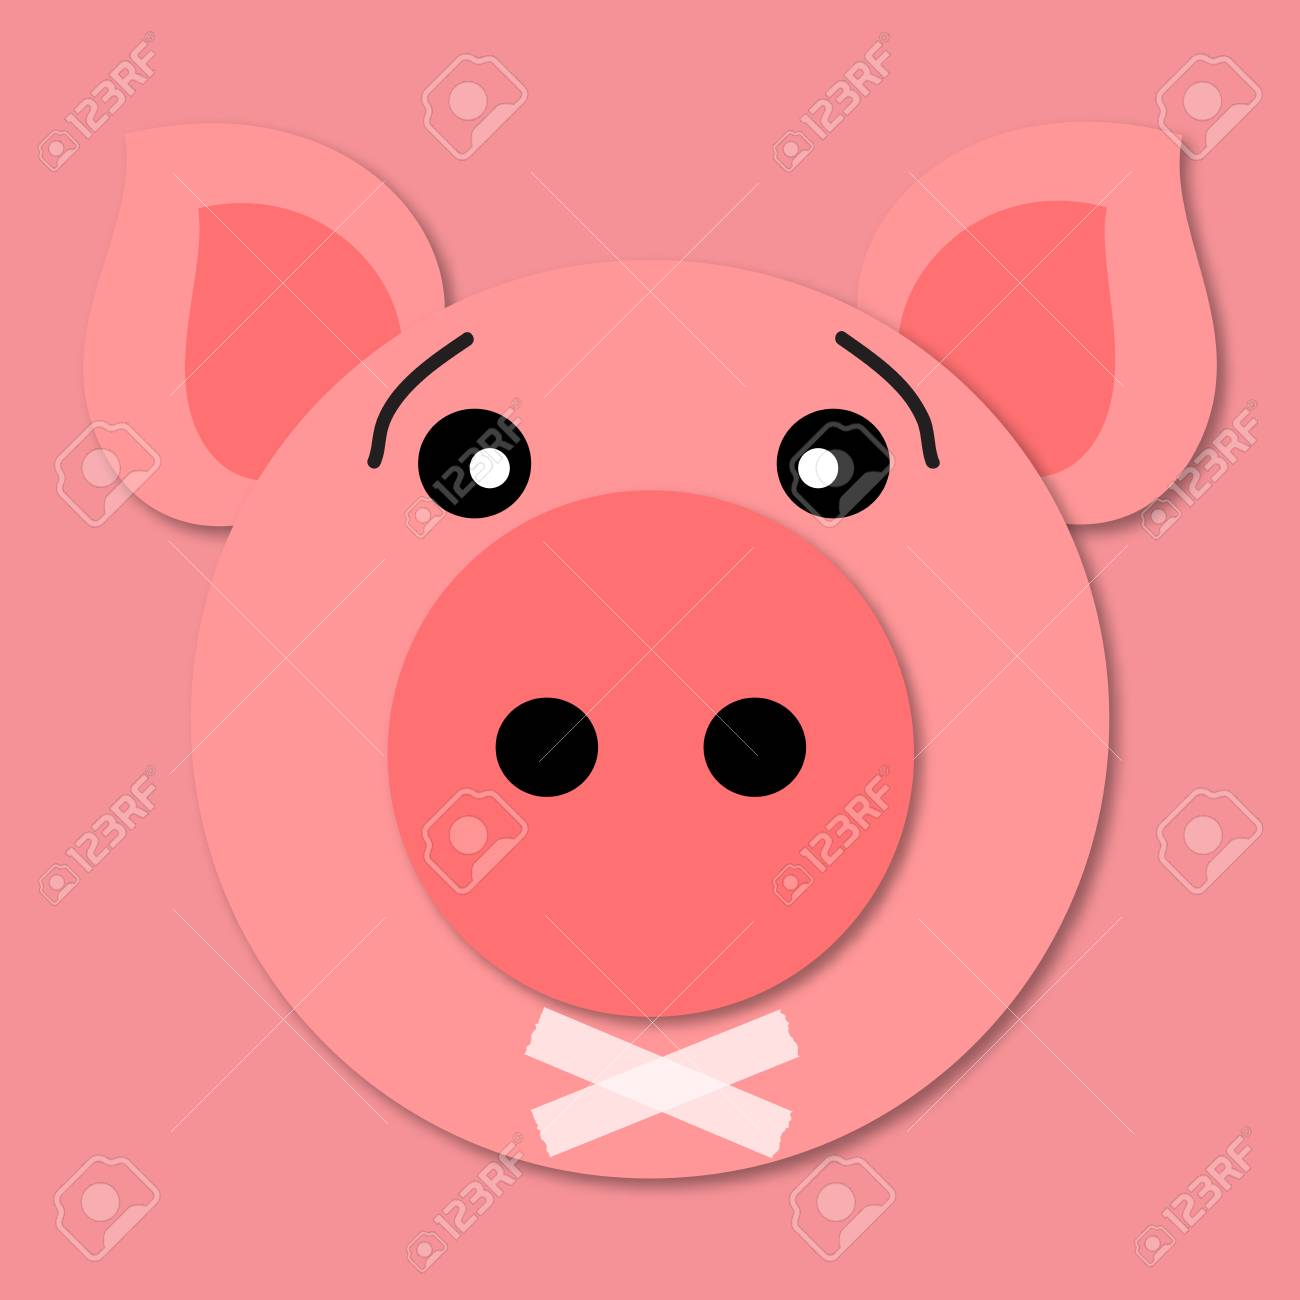 Pig Muzzle Close Up Funny And Cute Pig Face In Cartoon Style Royalty Free Cliparts Vectors And Stock Illustration Image 111938130